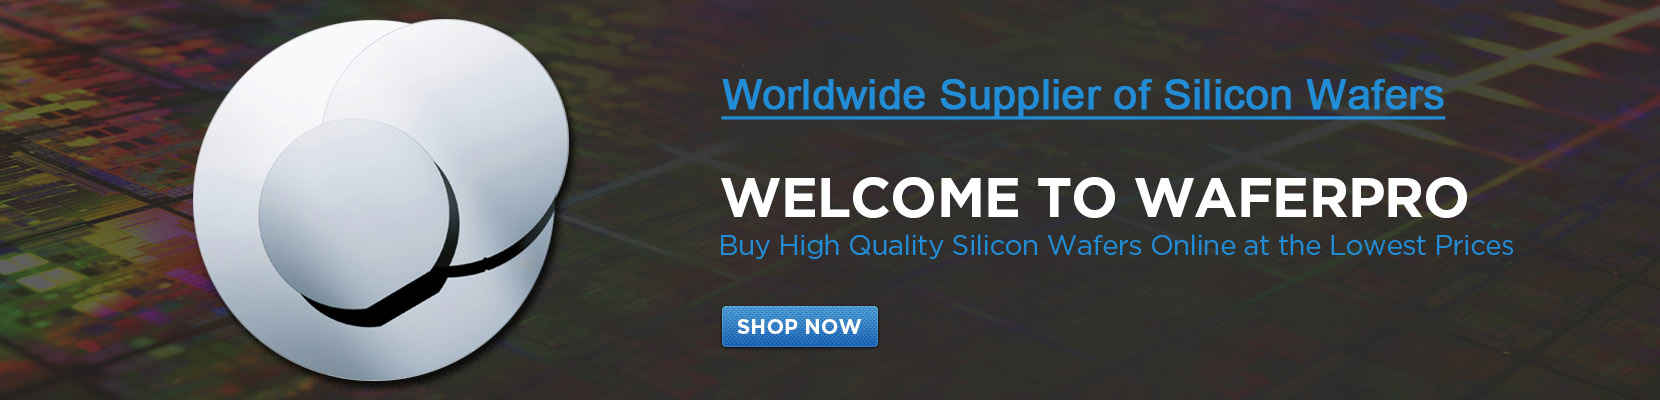 waferpro-banner-silicon-wafers